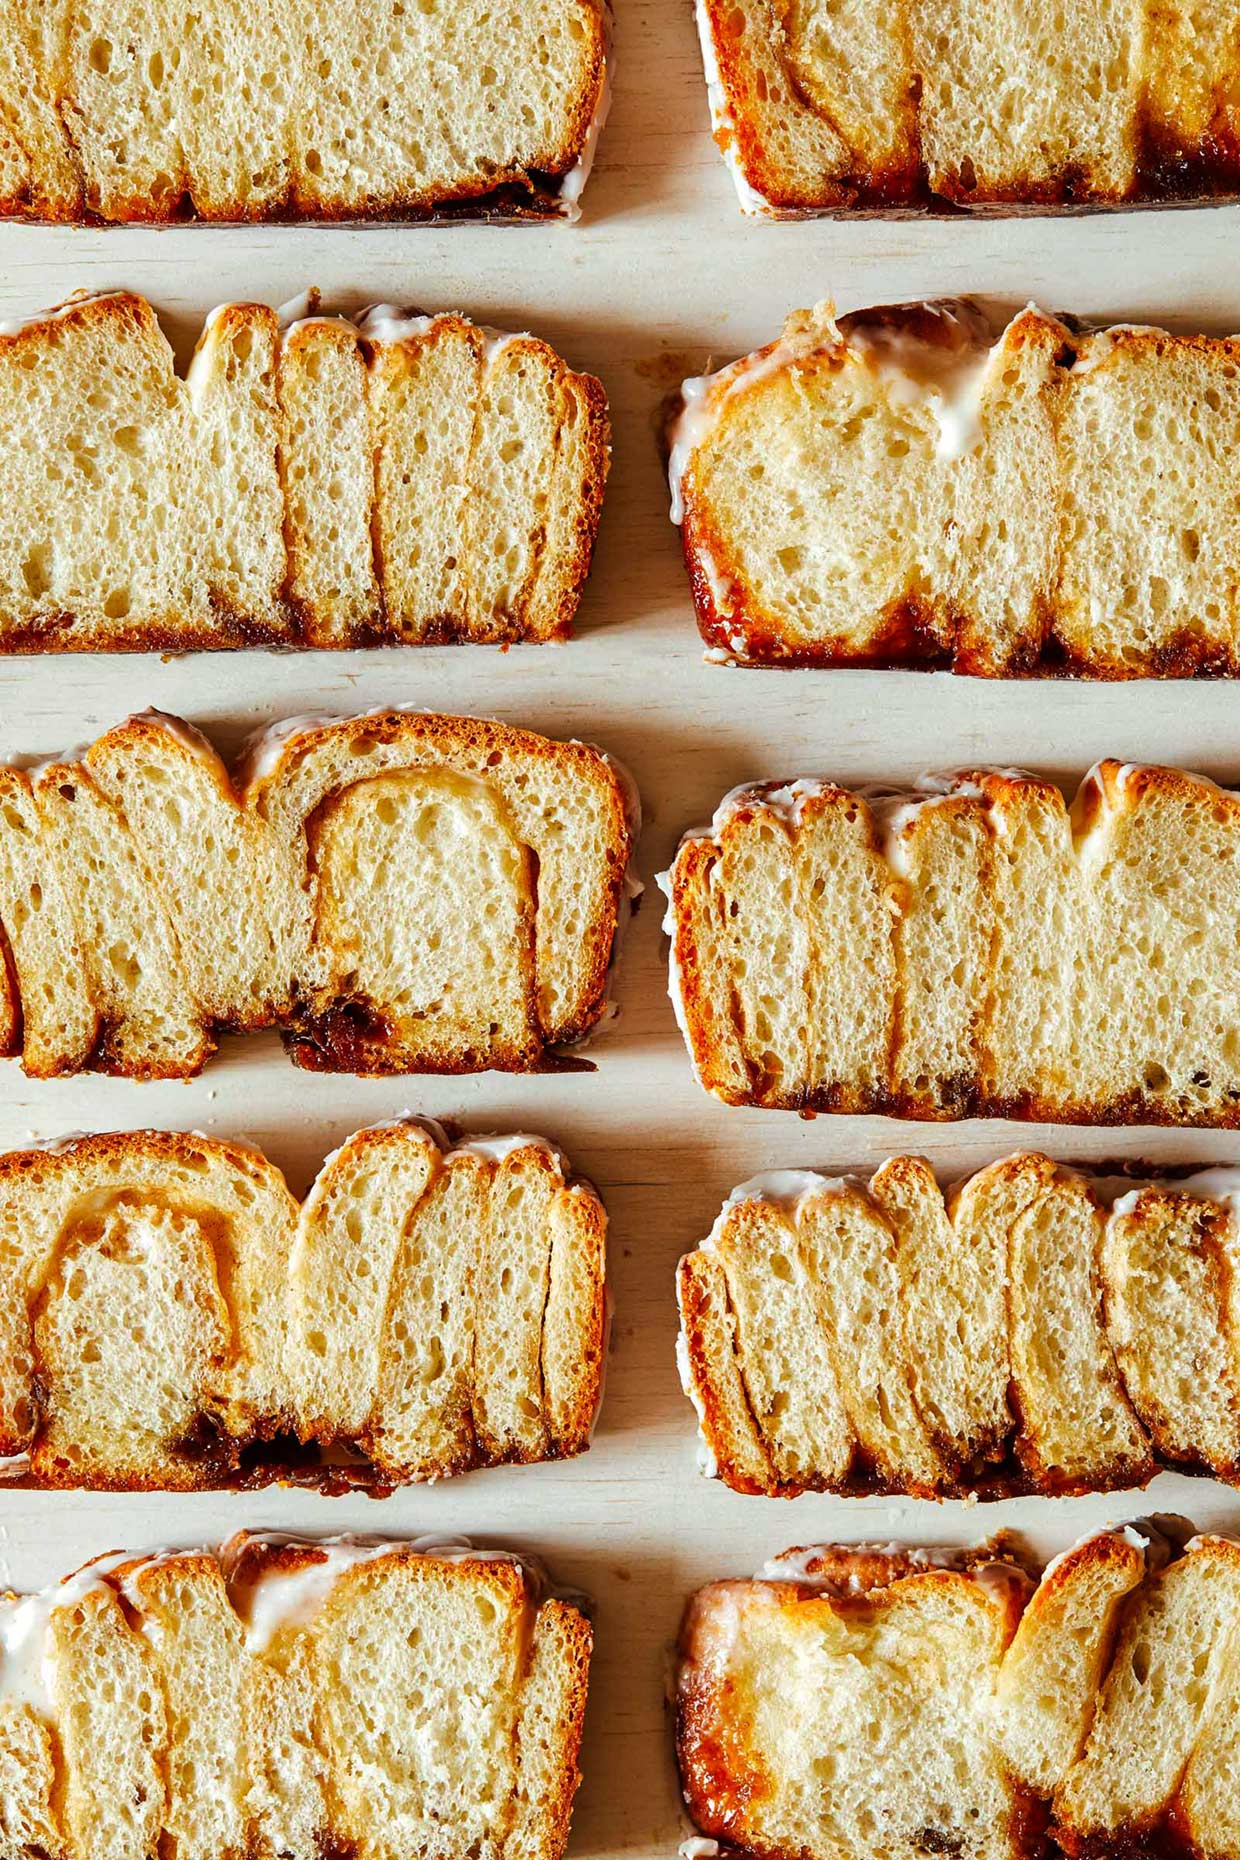 Cinnamon bread sliced by Food Photographer of Los Angeles